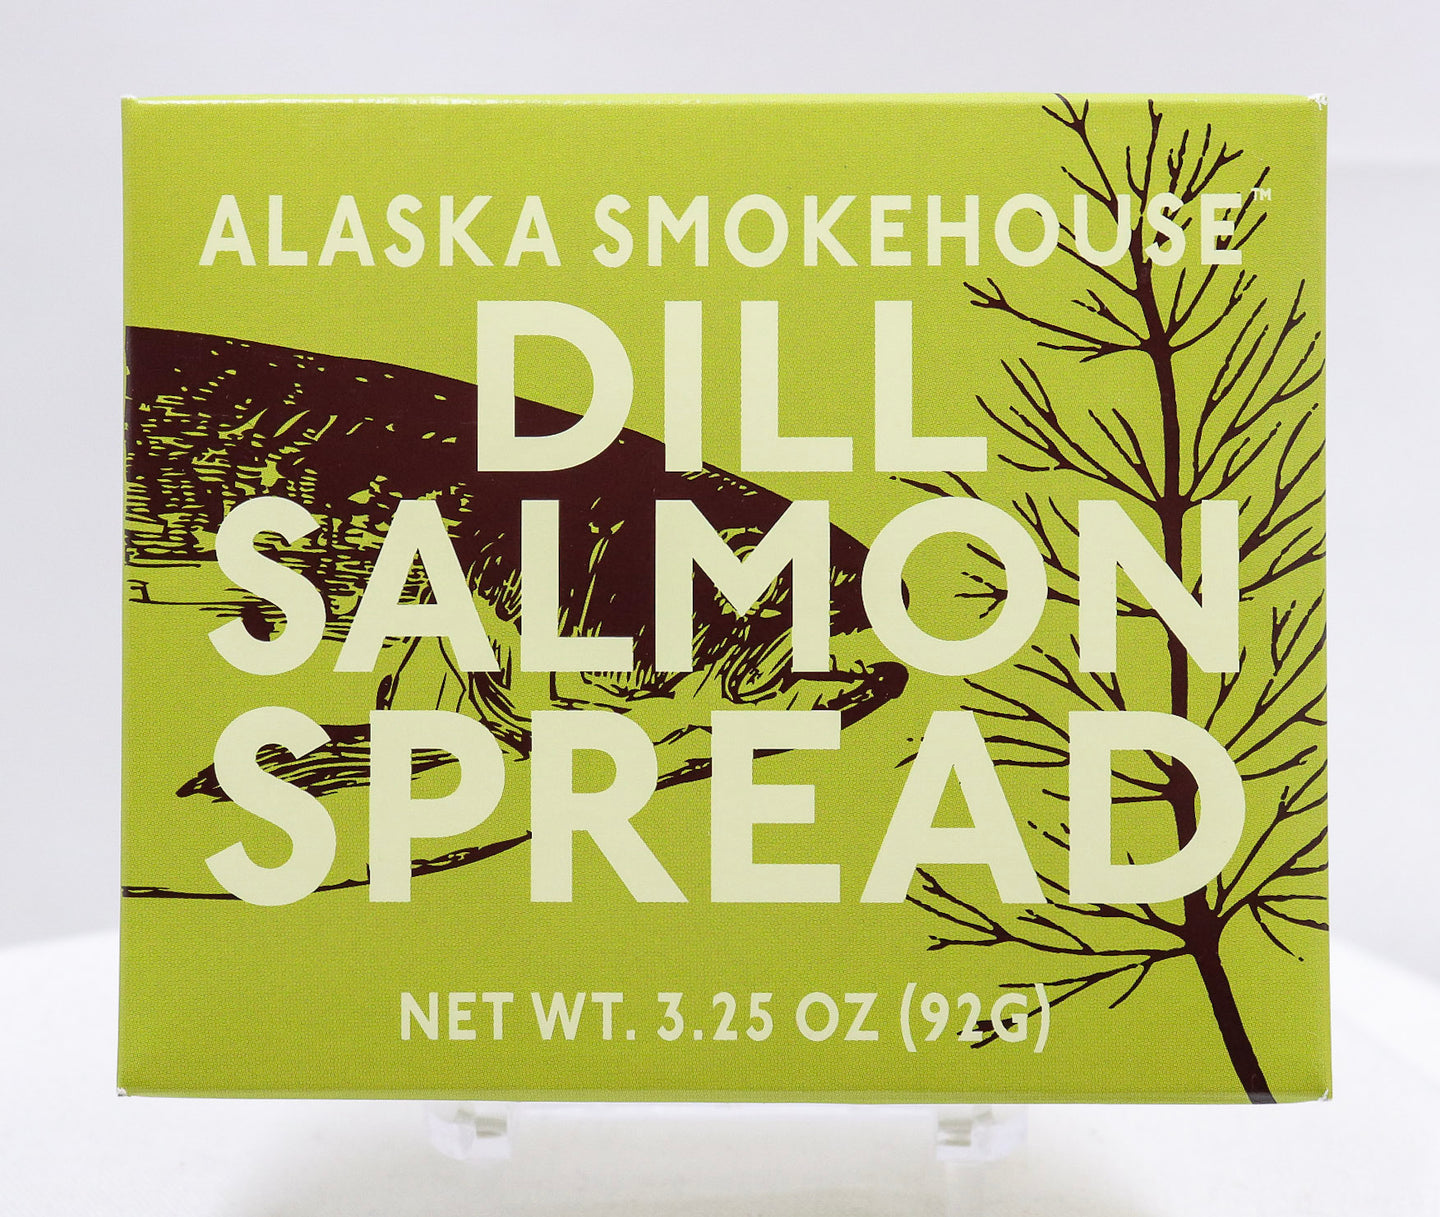 ALASKA SMOKEHOUSE DILL SALMON SPREAD 3.25 OZ